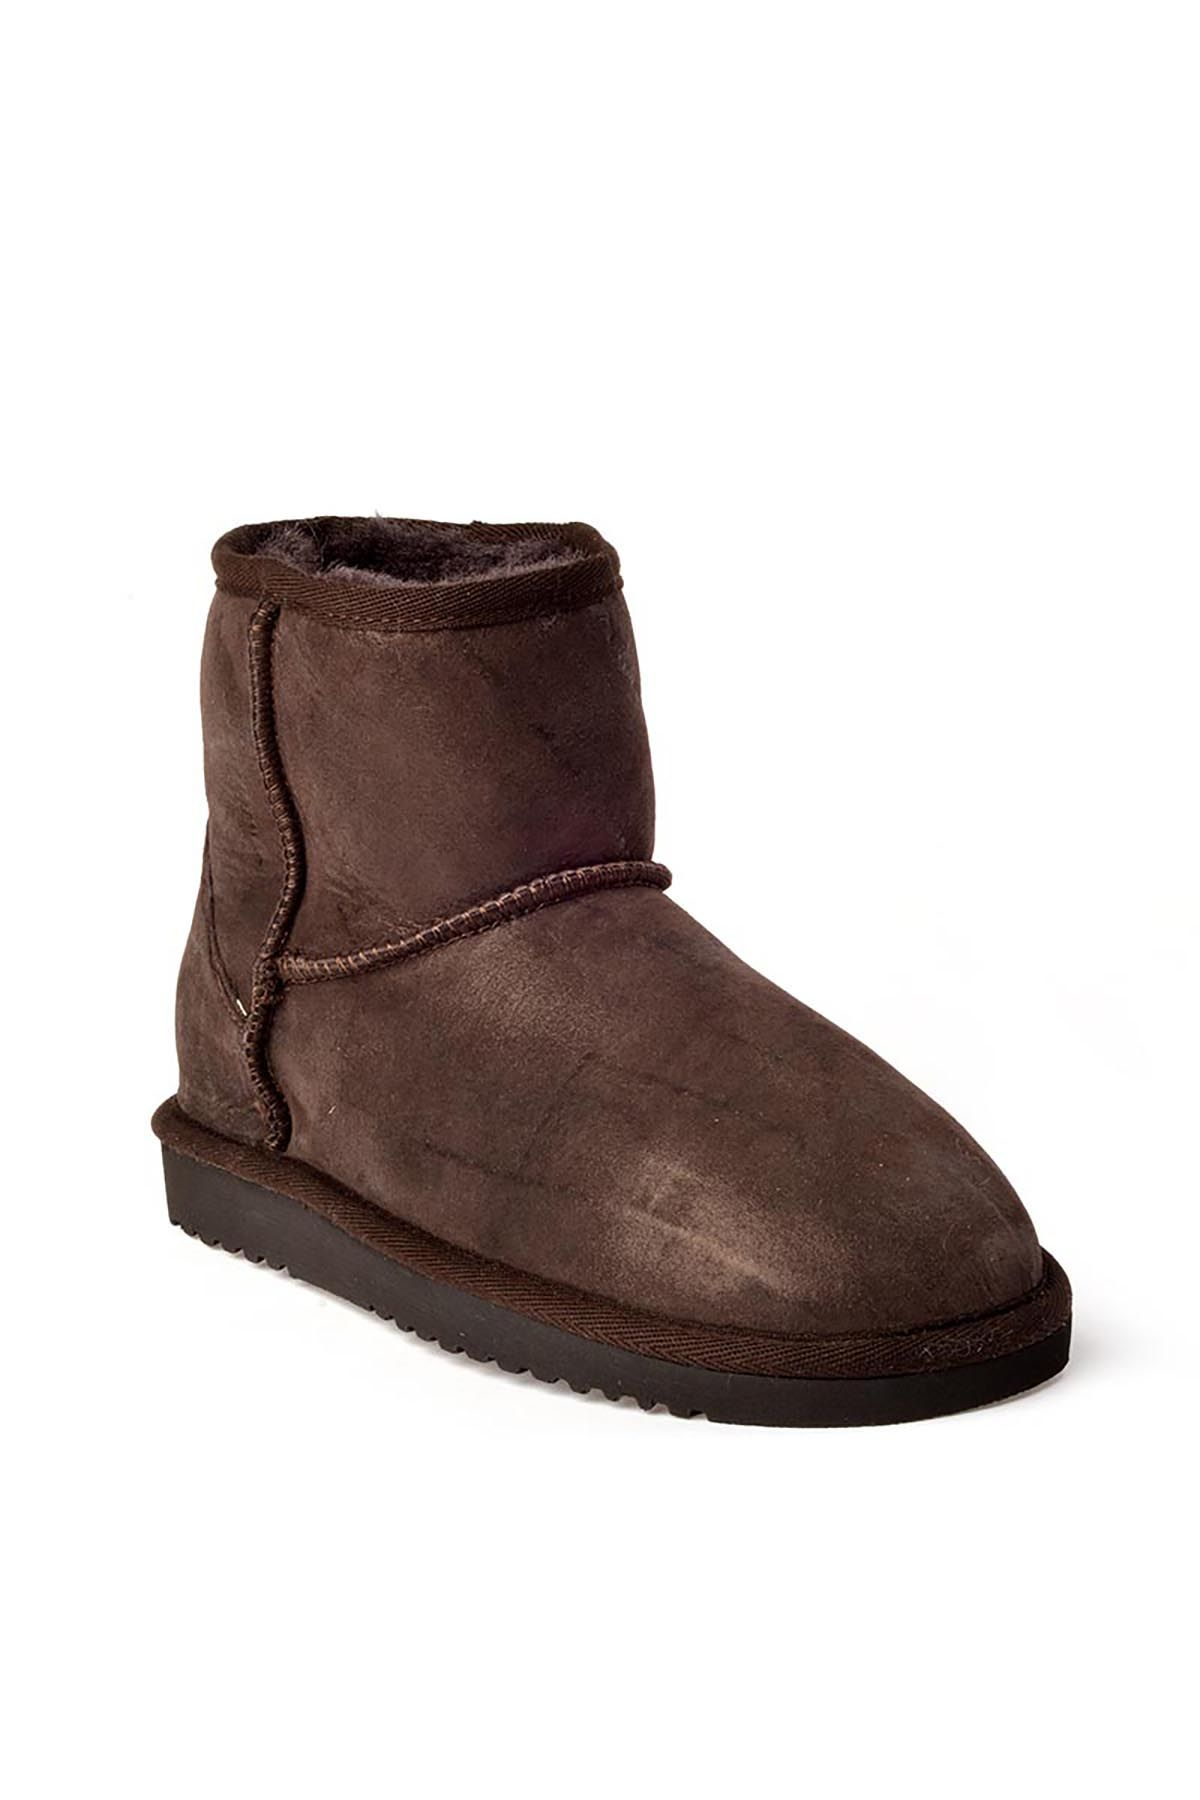 Cool Moon Women Boots From Genuine Fur 990168 Brown